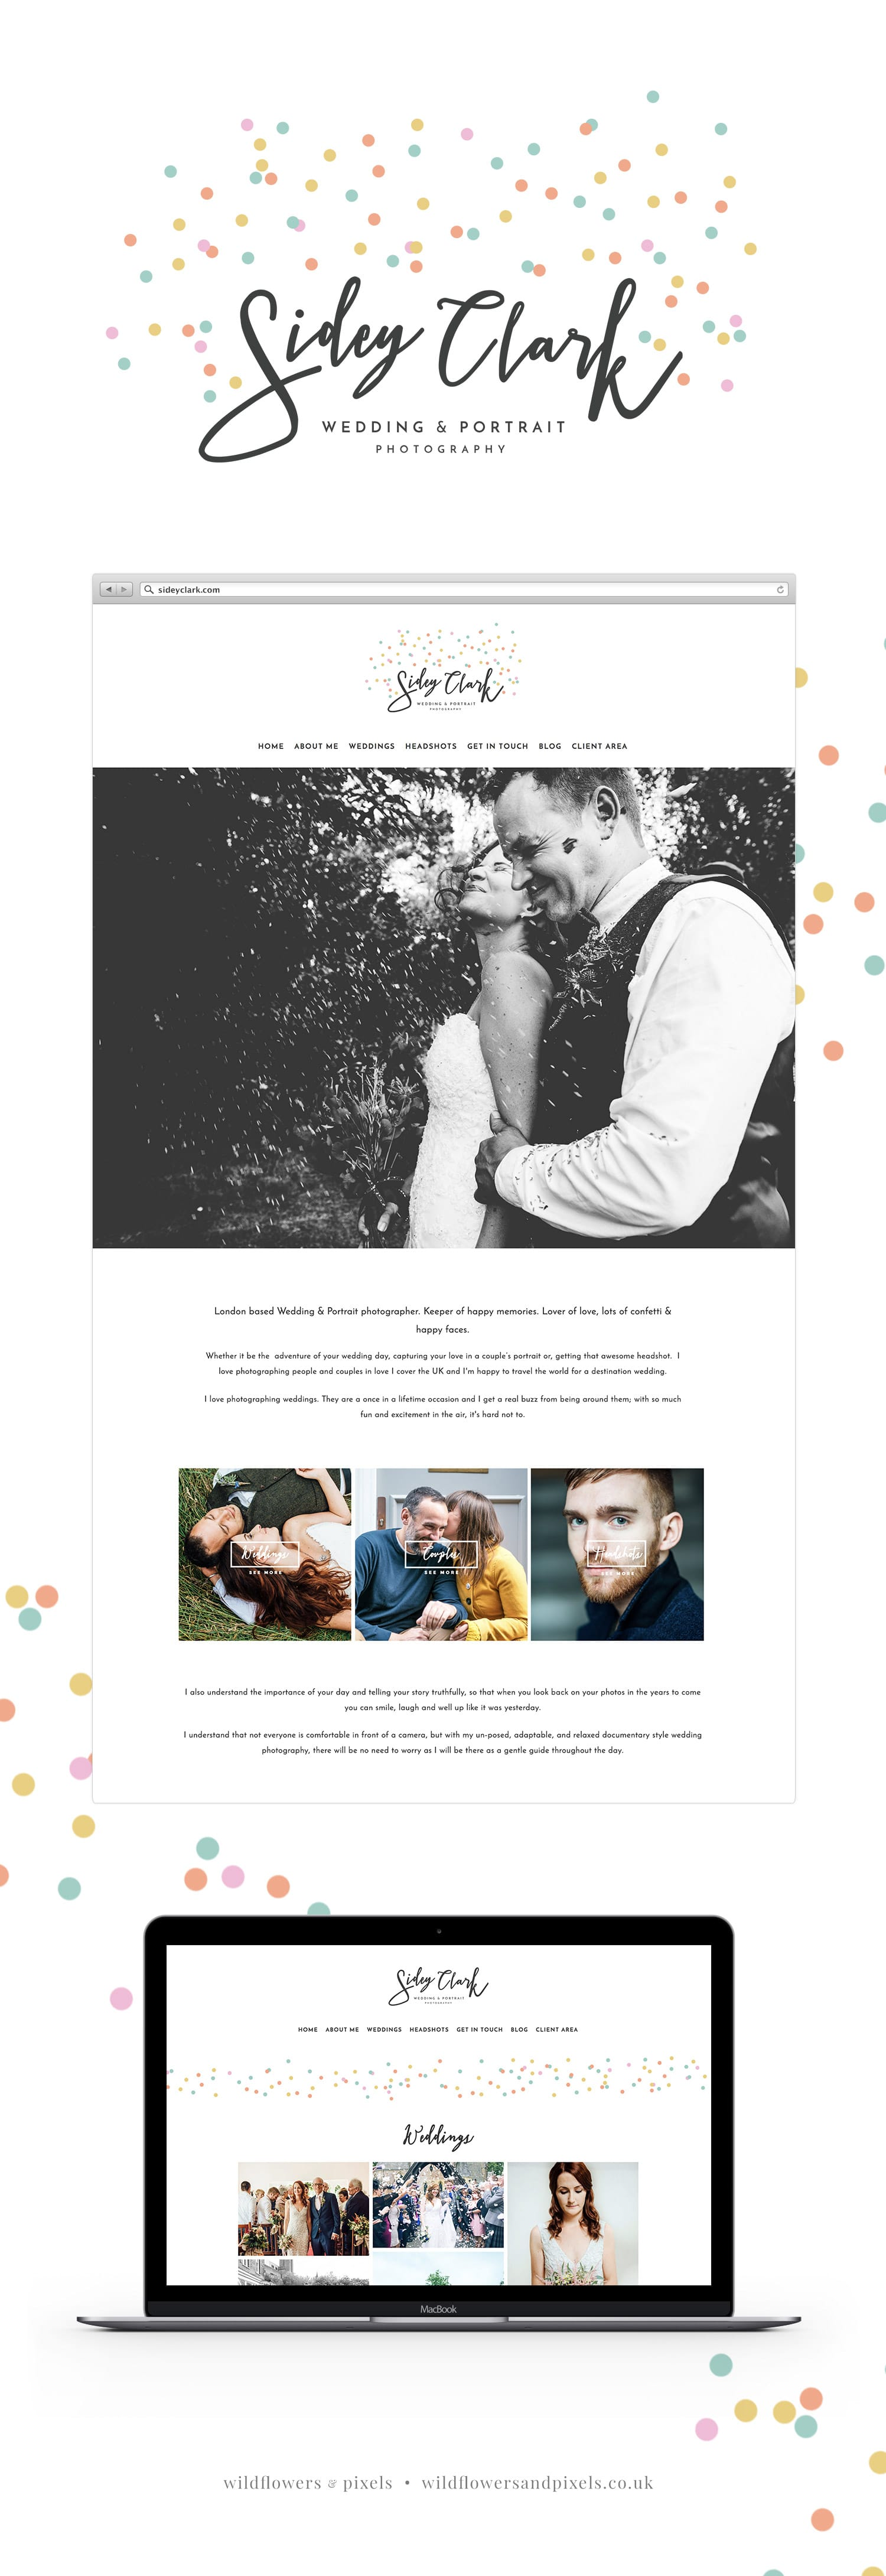 Branding & Website Design for Sidey Clark Photography | Wedding Photography Branding